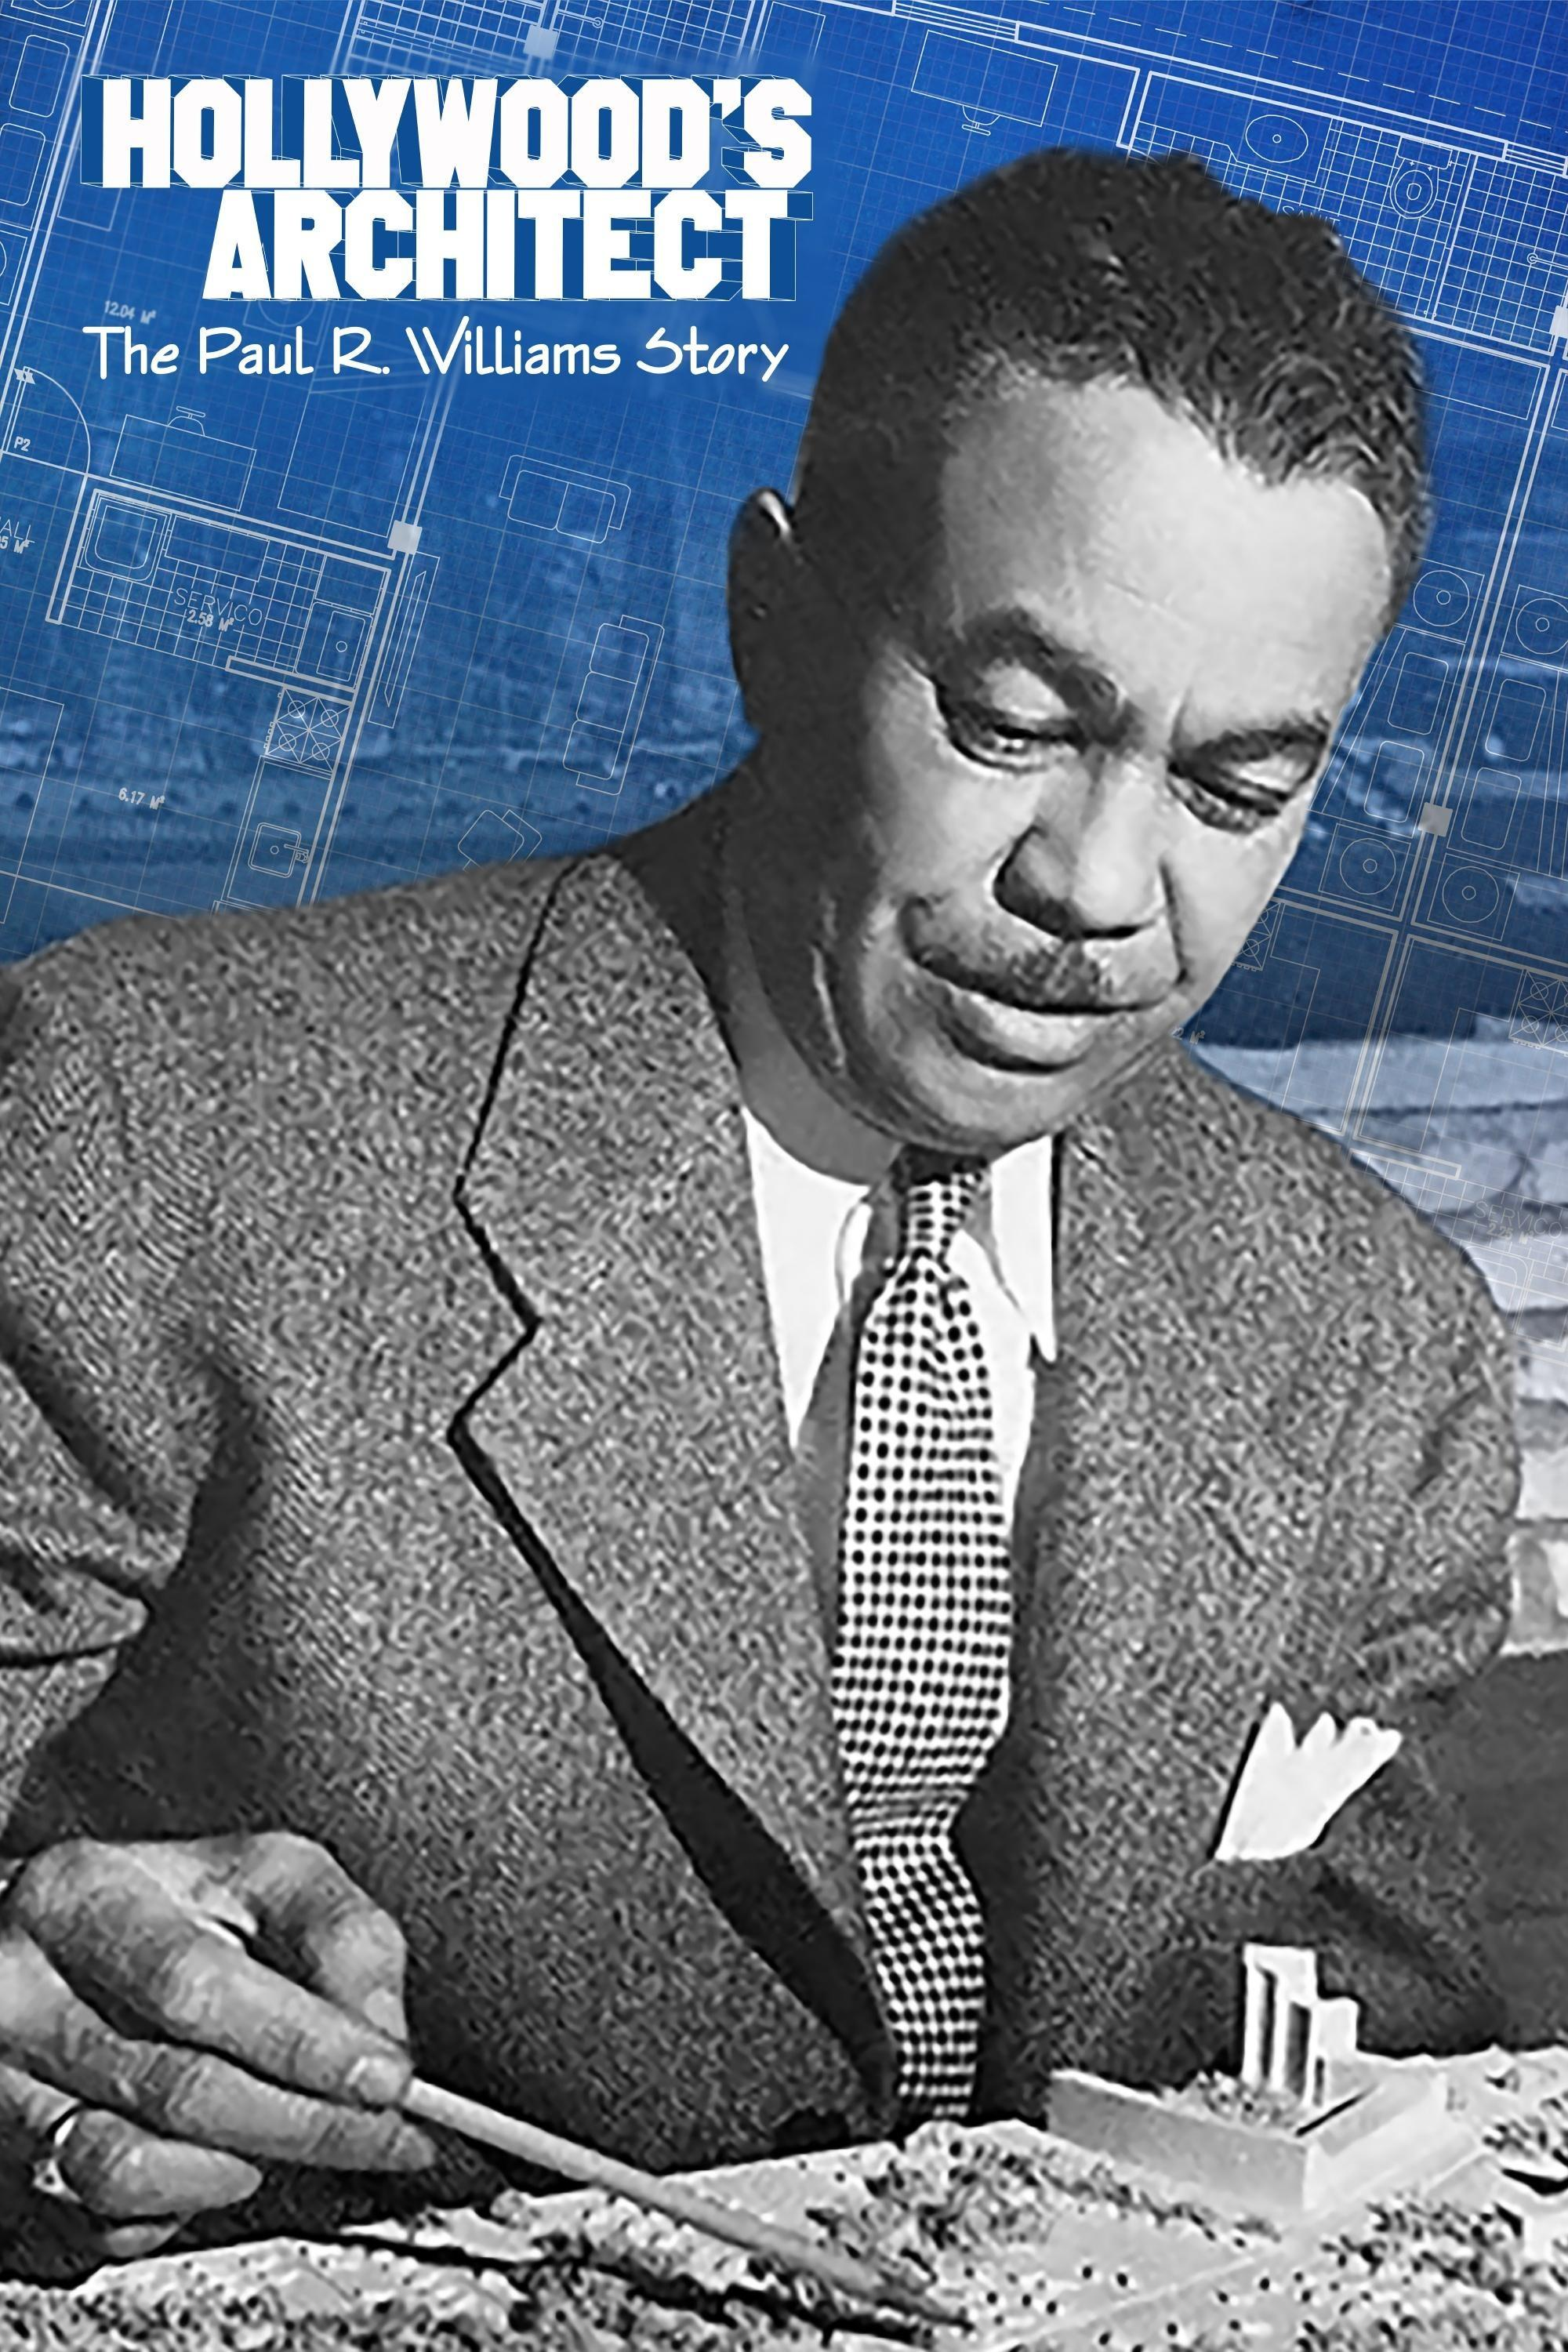 Hollywood's Architect The Paul R. Williams Story